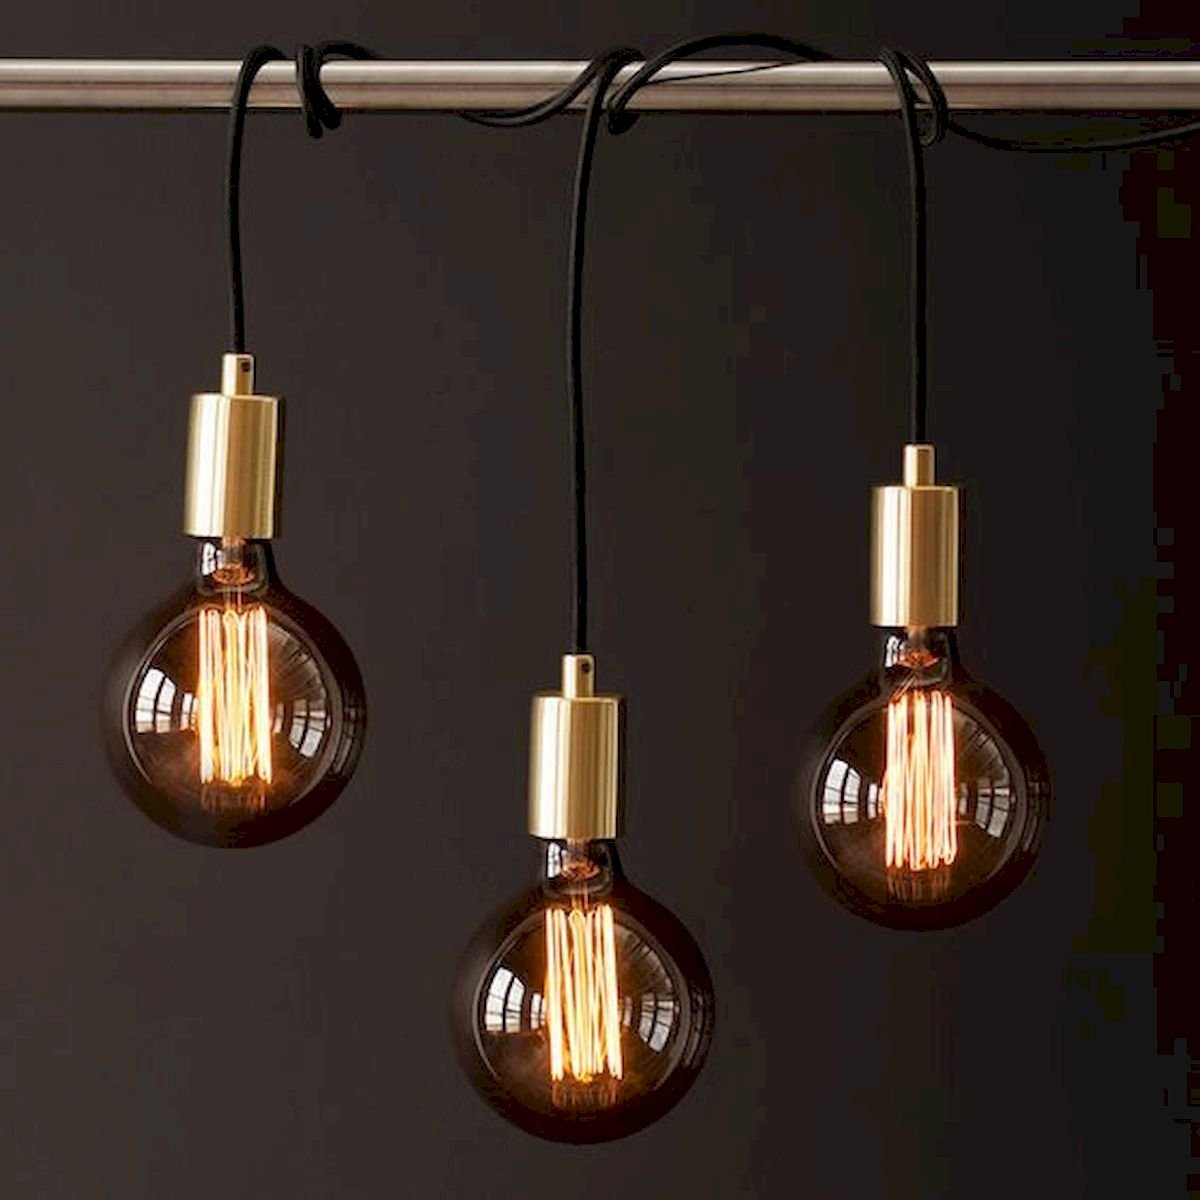 40 Creative DIY Lamps Decoration Ideas for Your Home (34)